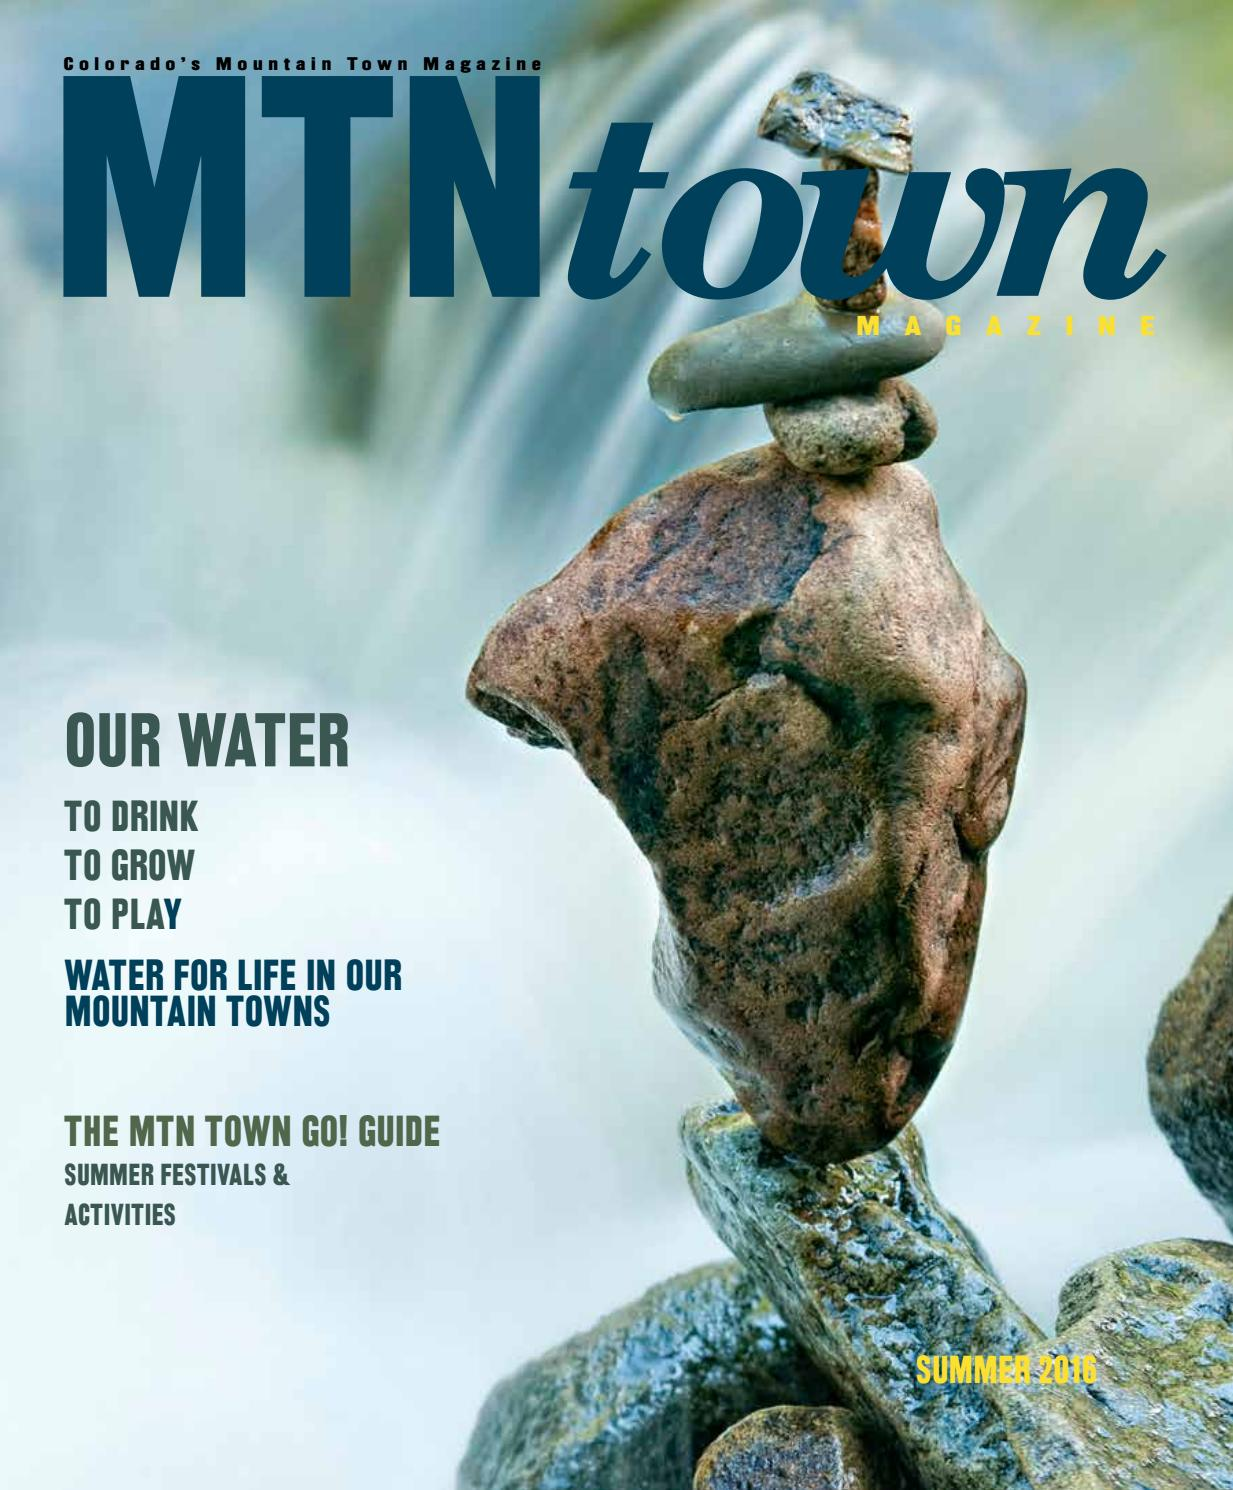 Mtn Town Magazine Summer 2016 By Mountain Issuu Find Delta Faucet Repair Parts Yamp Shower Kits And Order Today